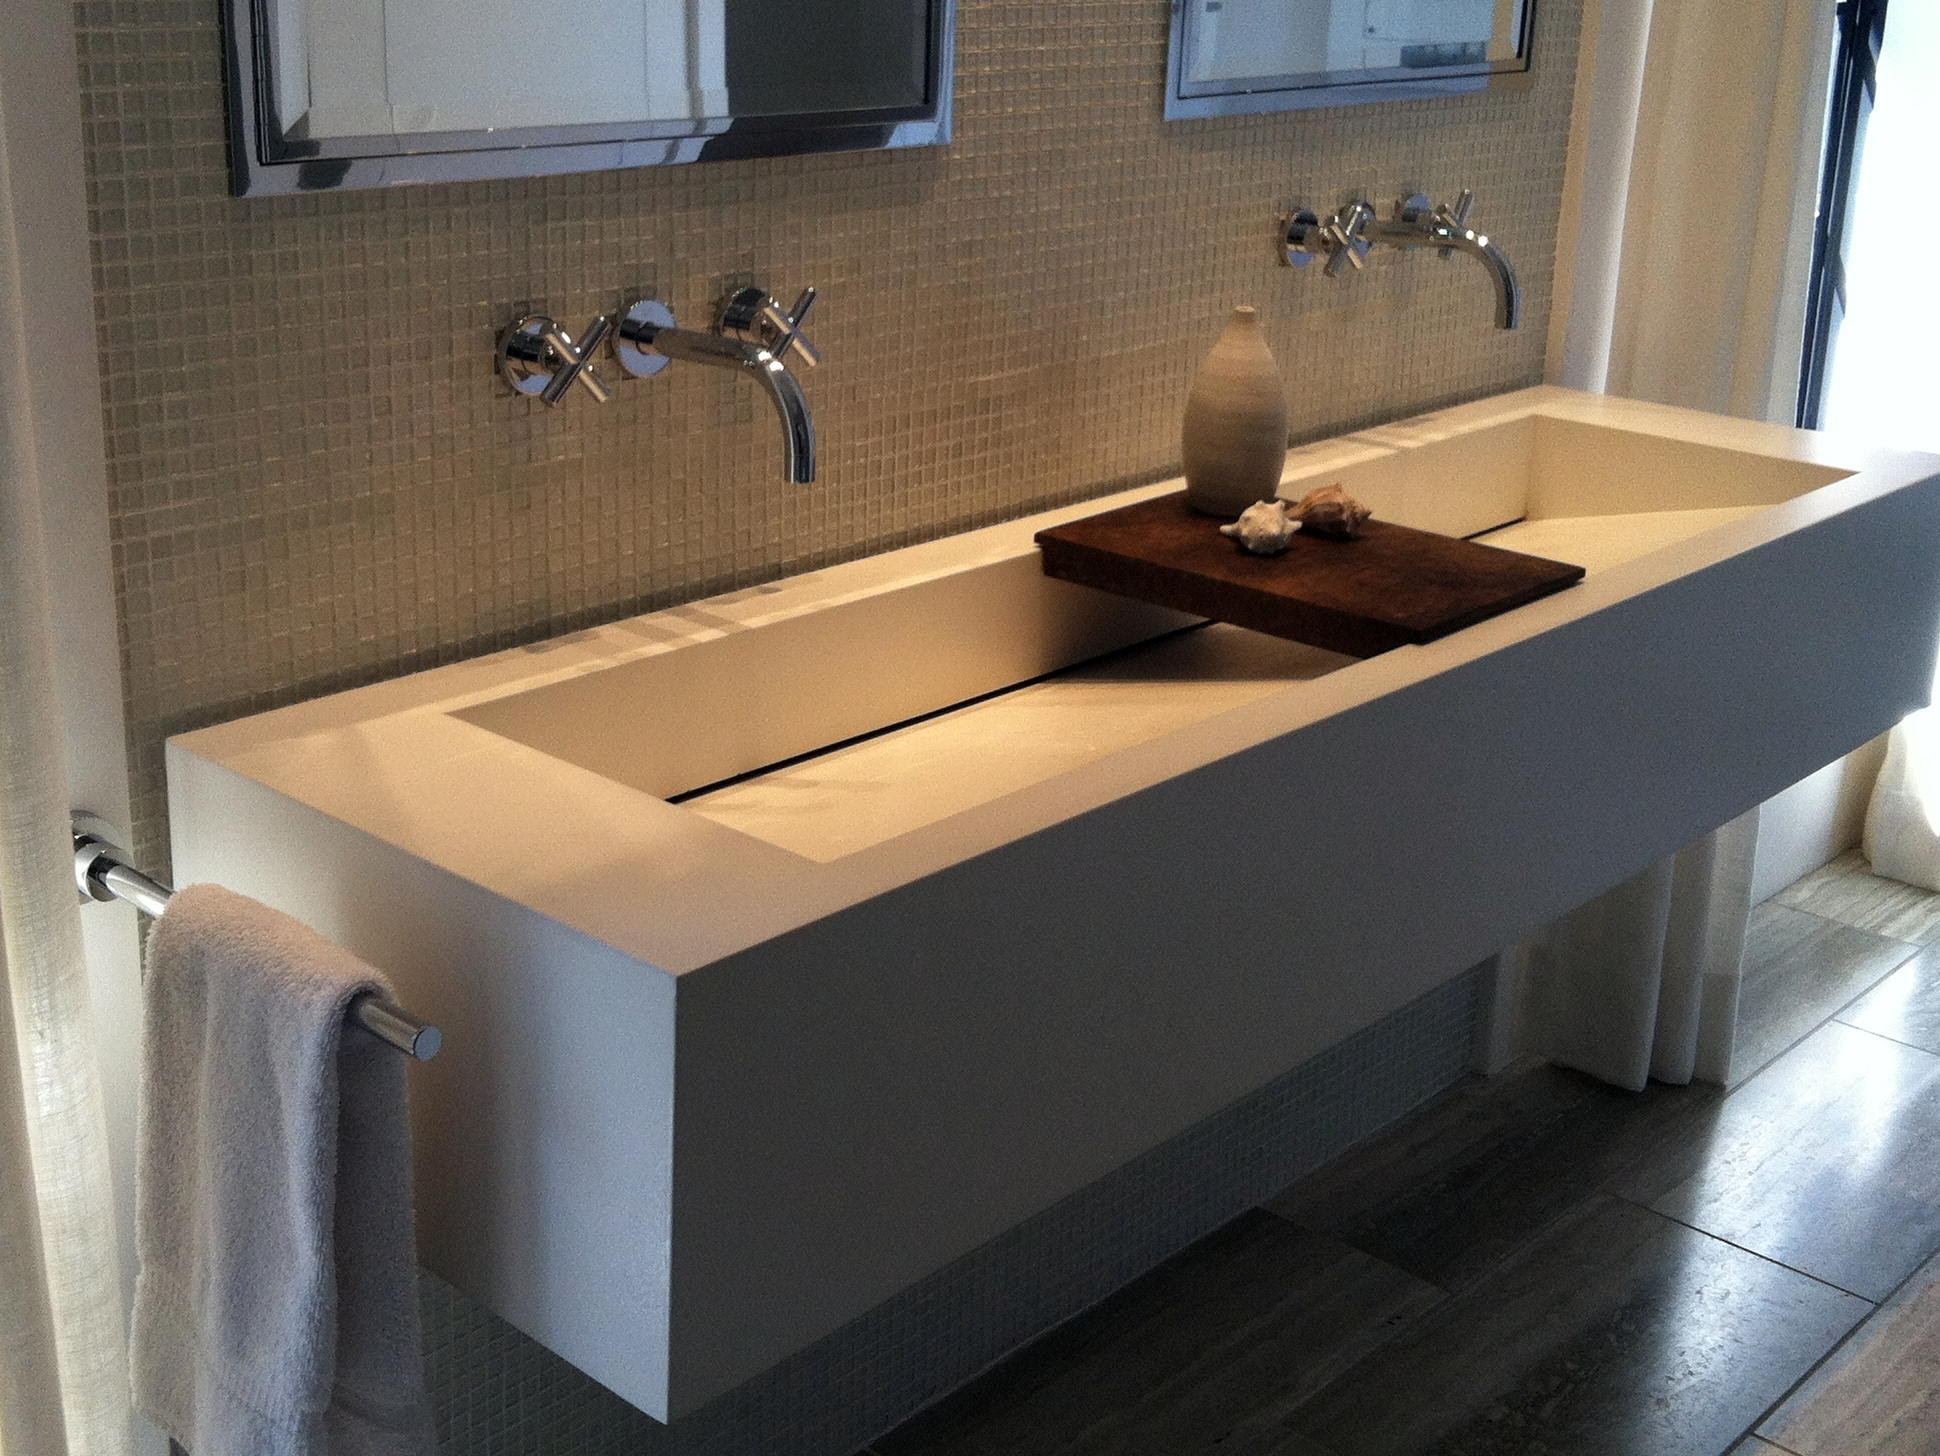 Troff Sink: One Sink for Many Users - HomesFeed